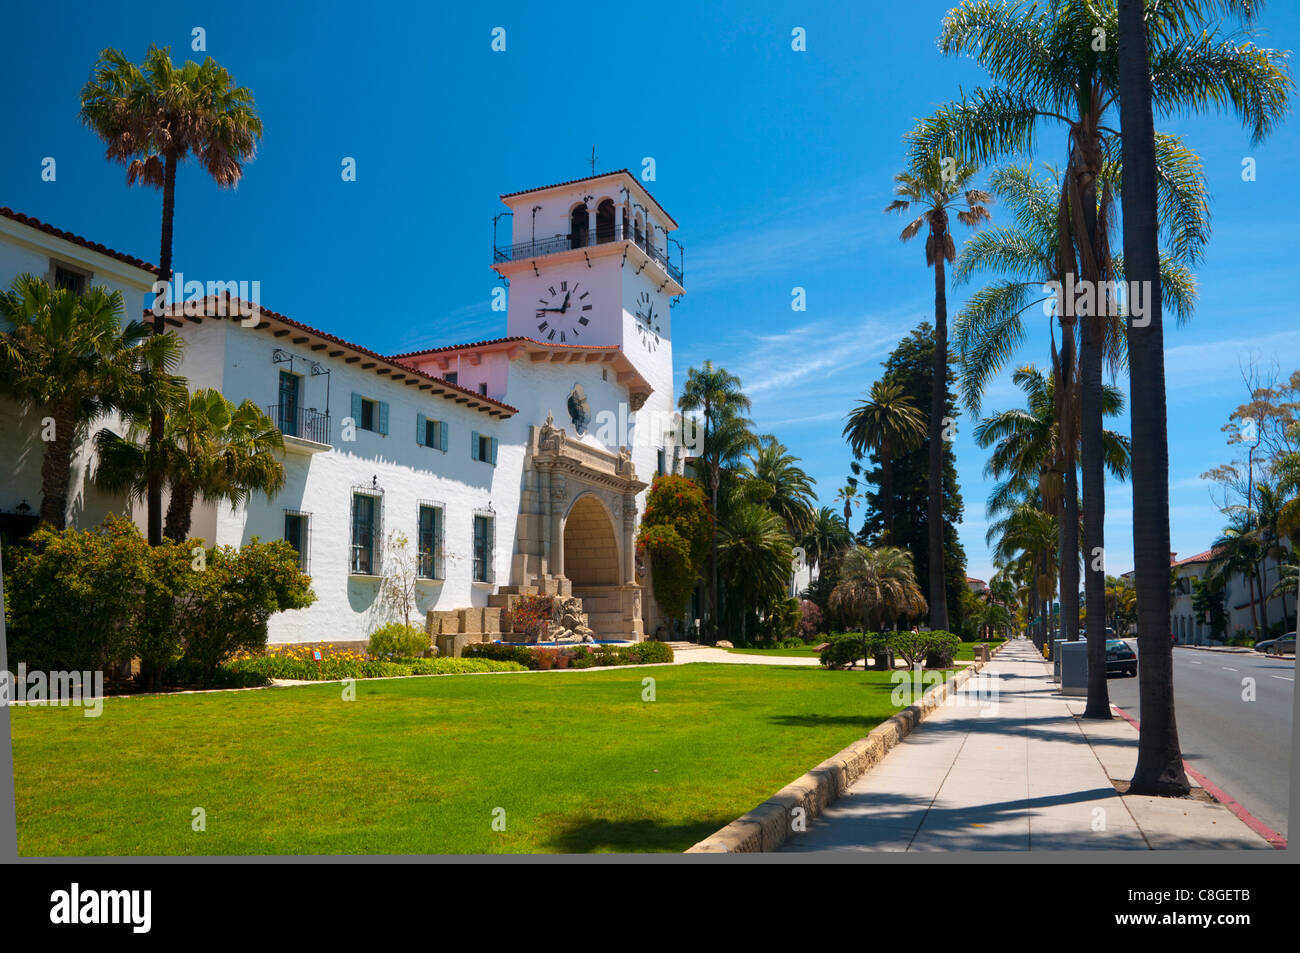 County Courthouse, Santa Barbara, California, United States of America - Stock Image